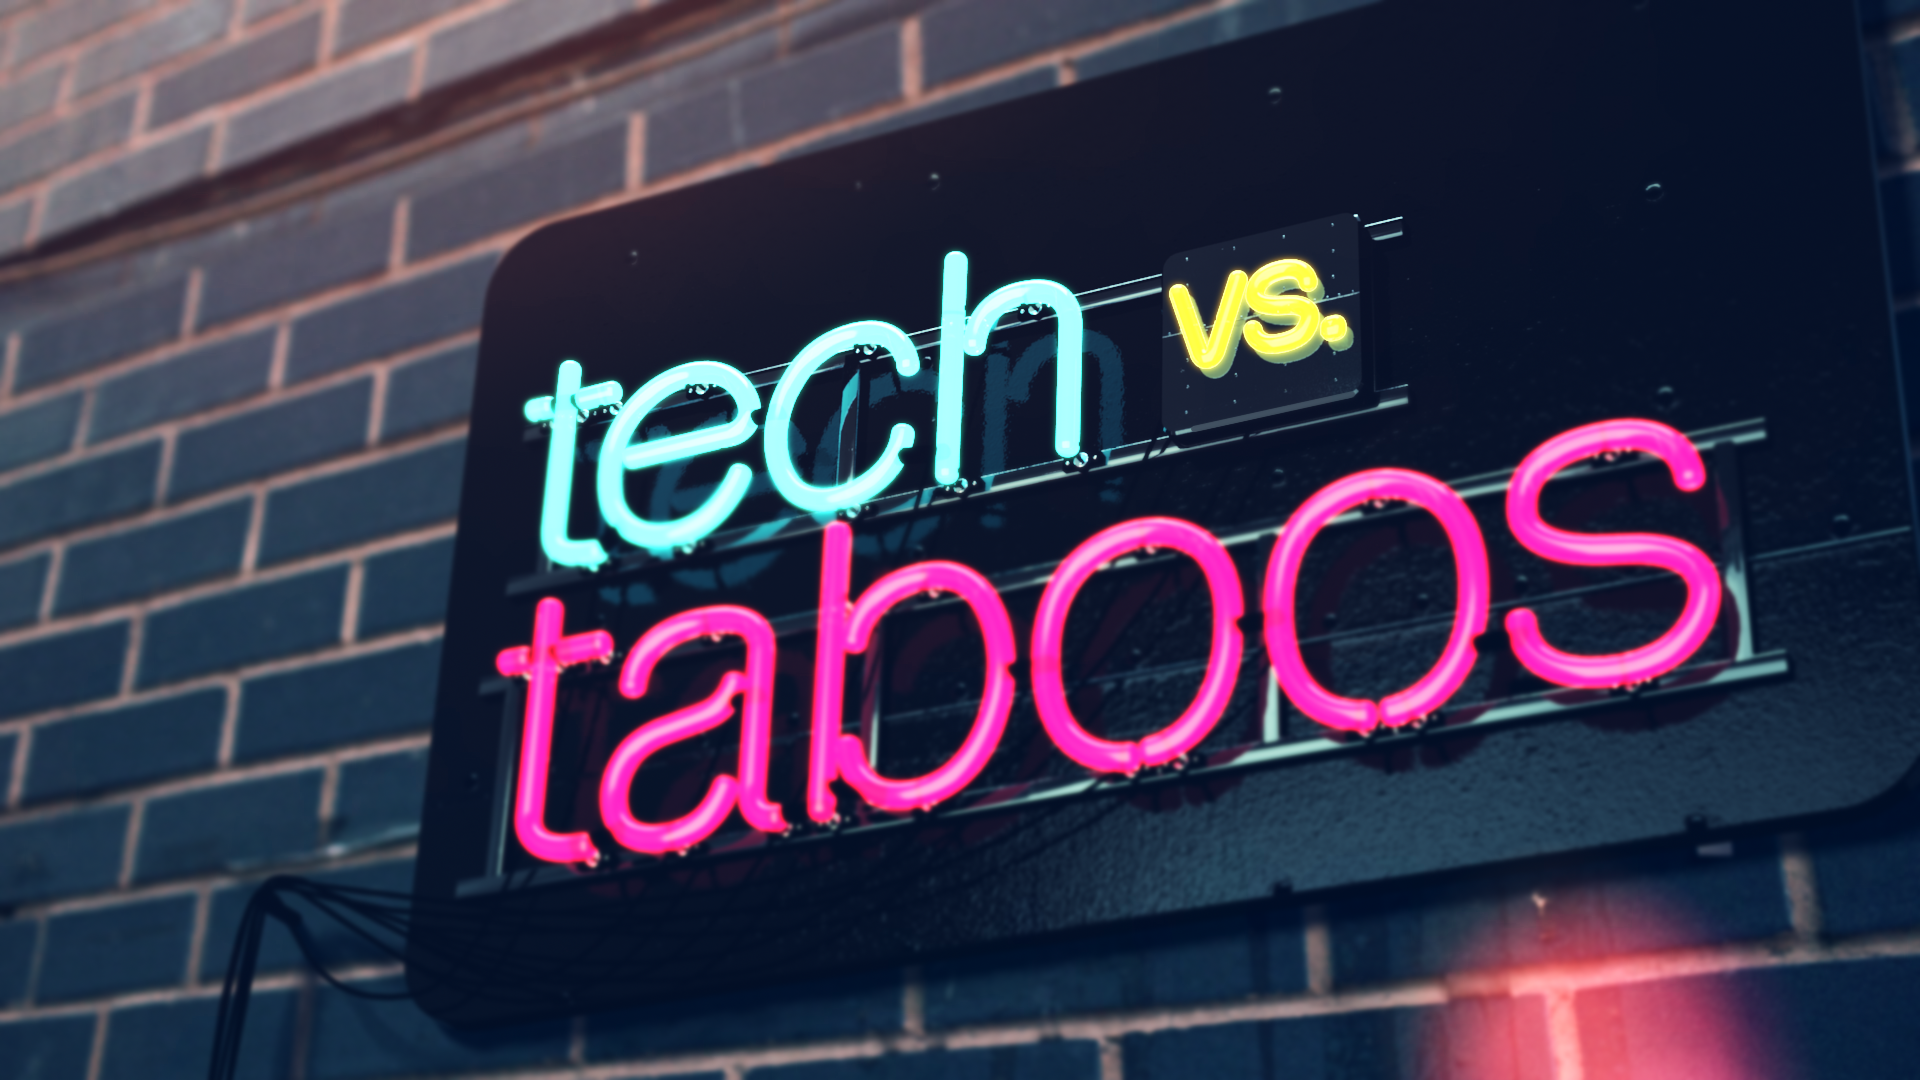 CNN I Tech vs. Taboos I Series